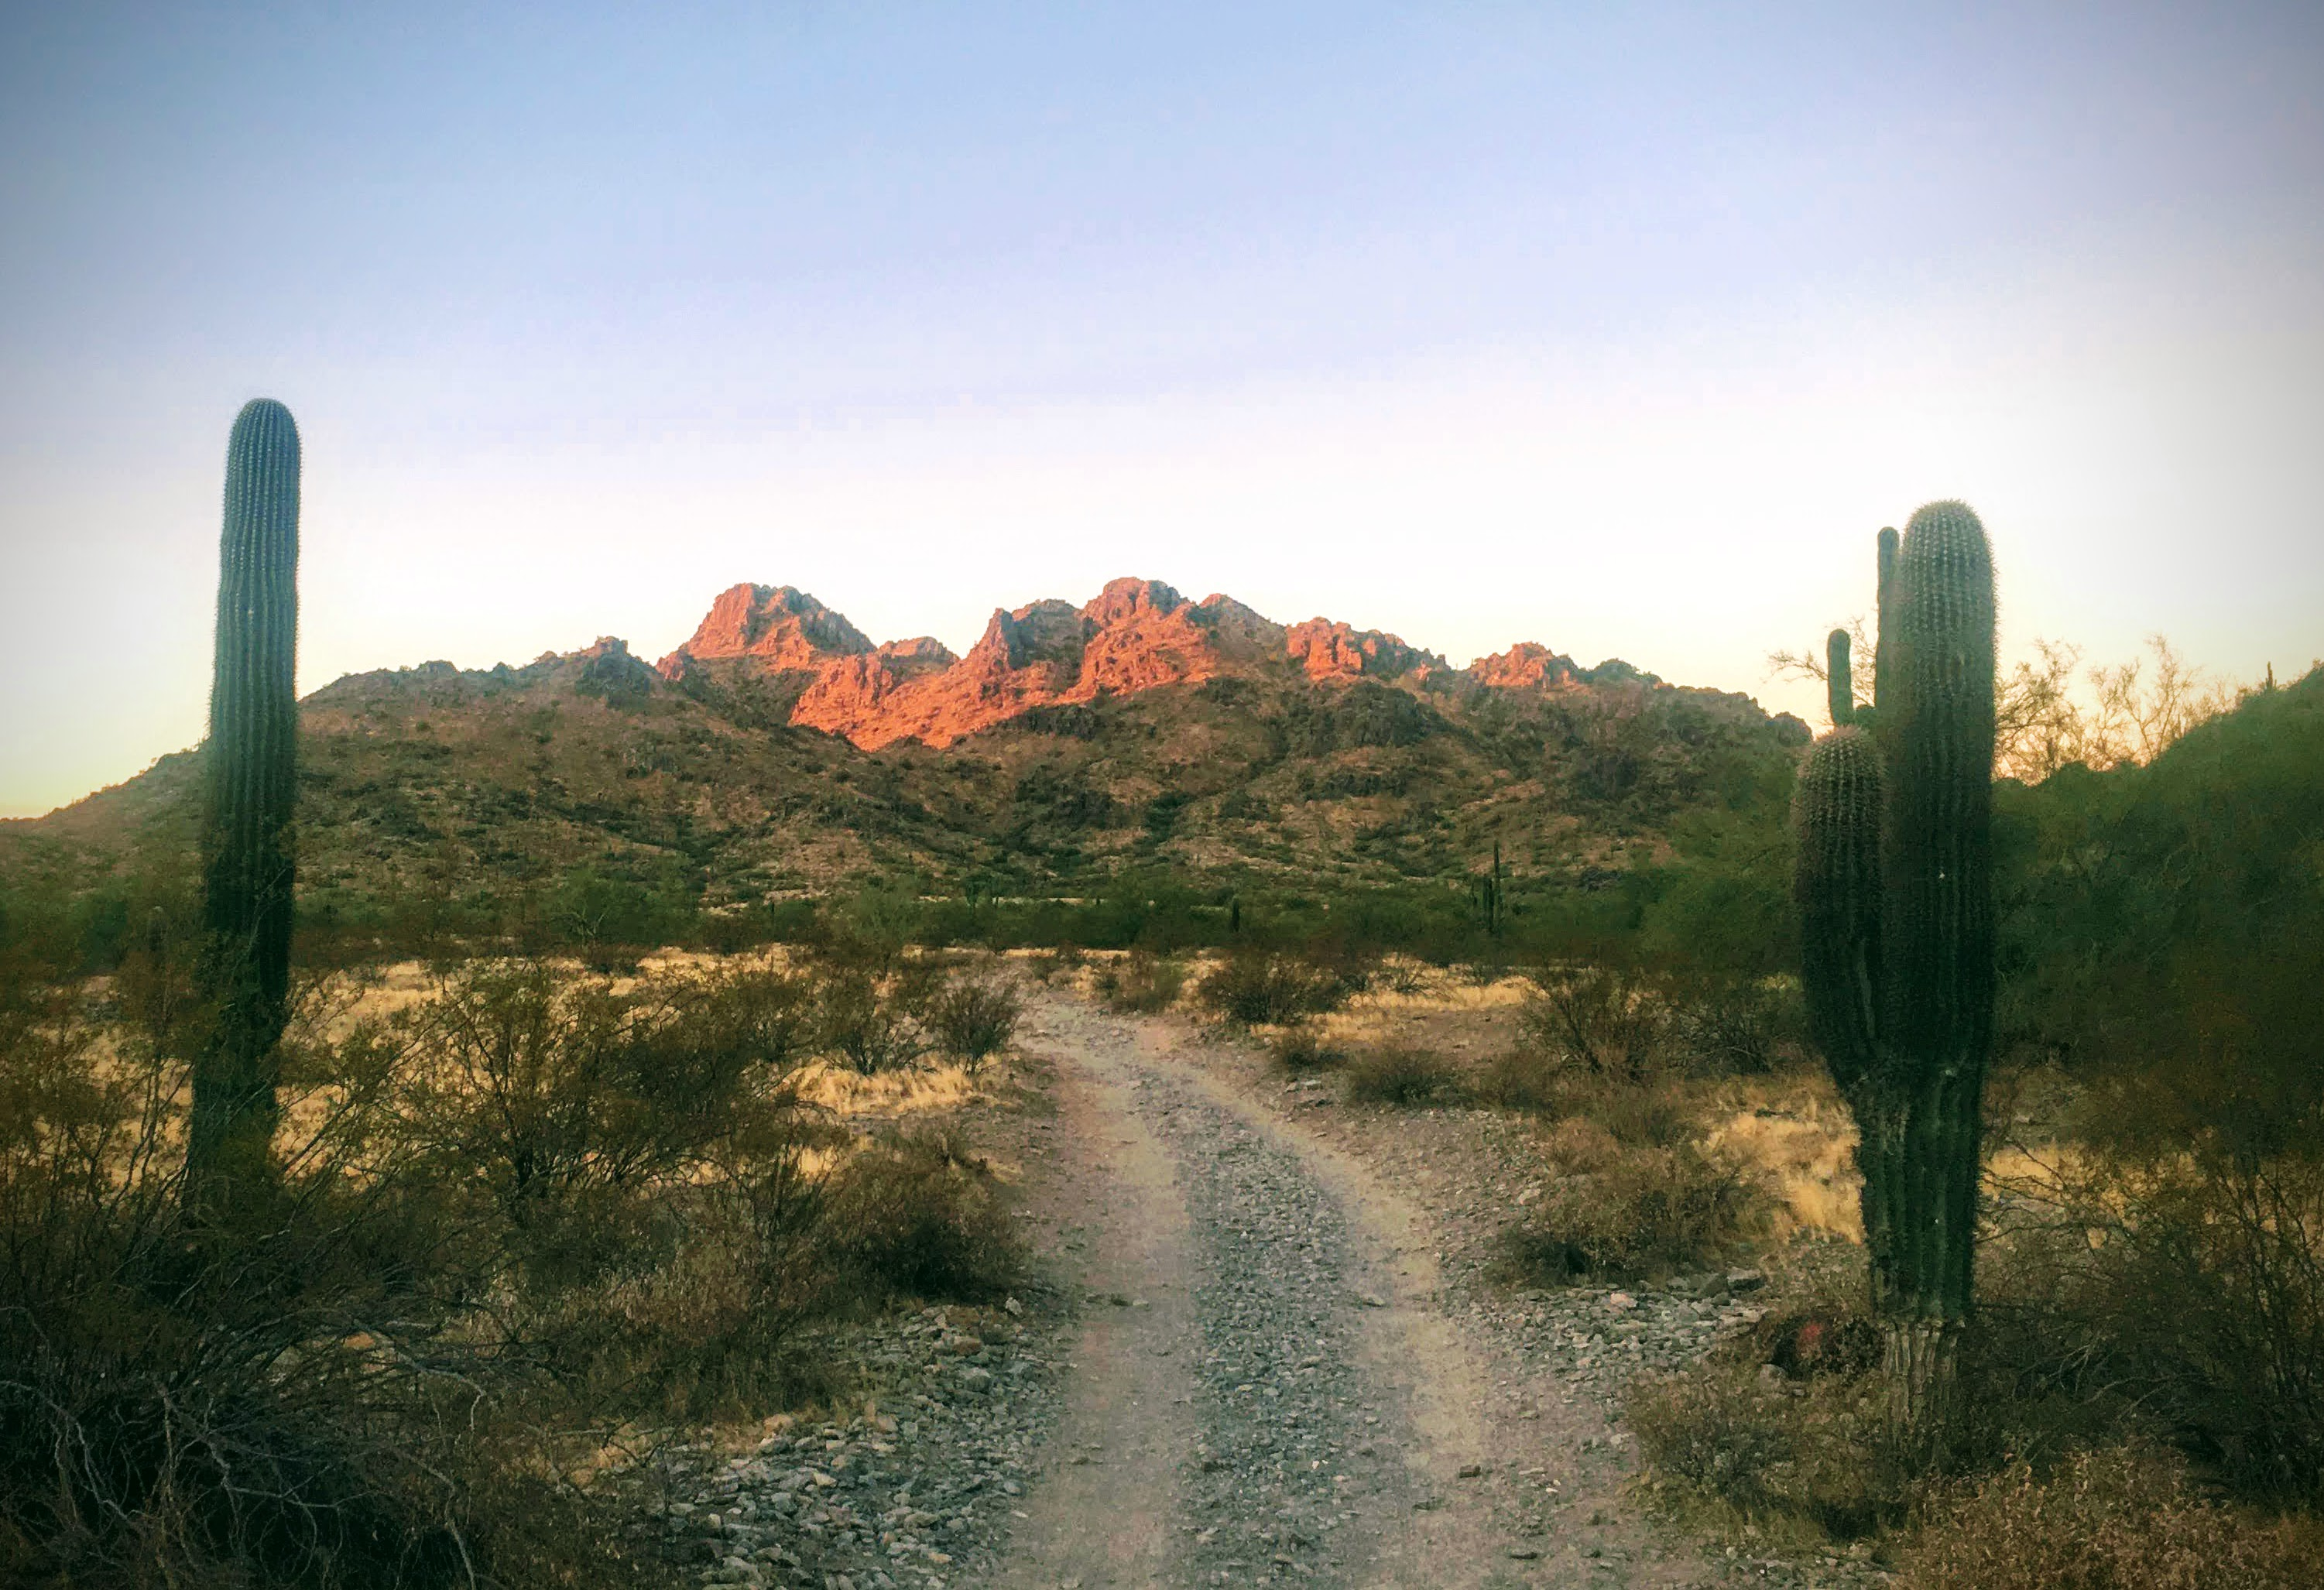 trail between two cactuses with mountain in background